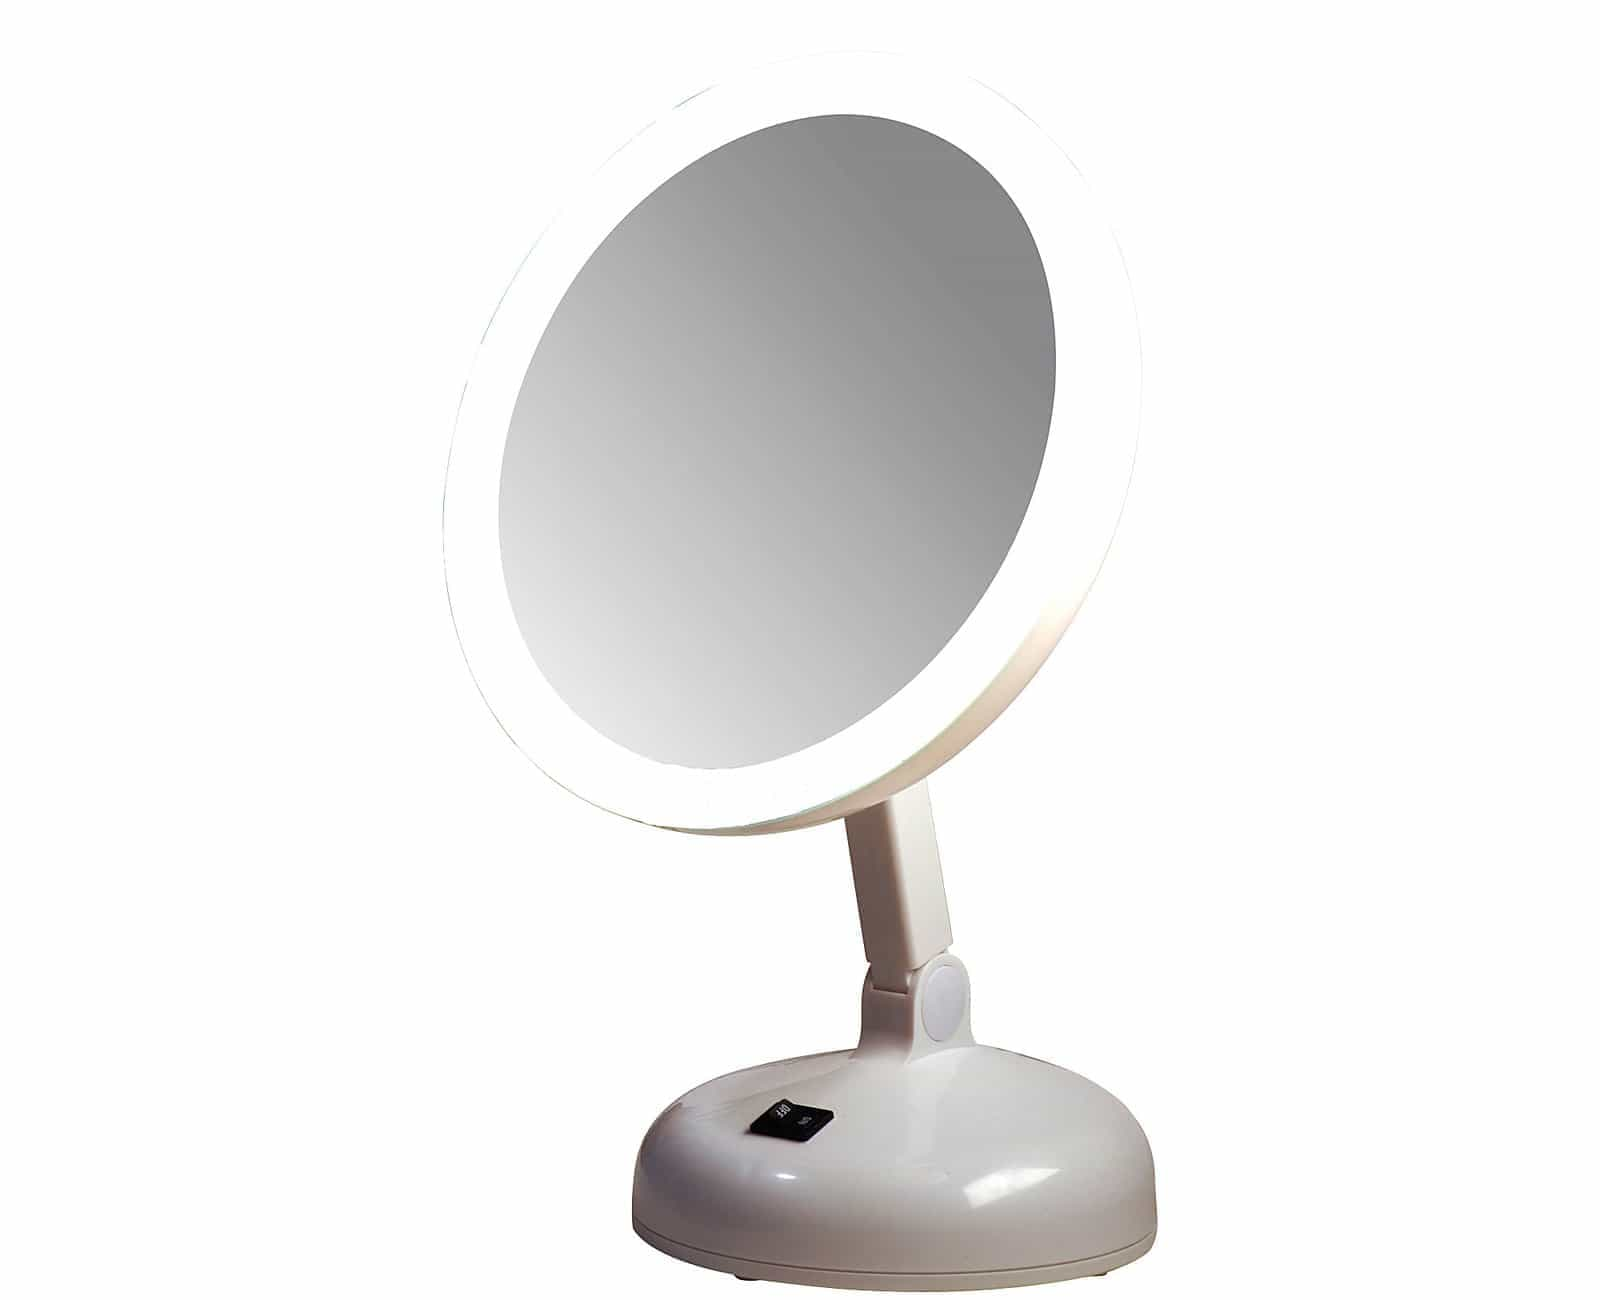 best affordable makeup mirror of 2018